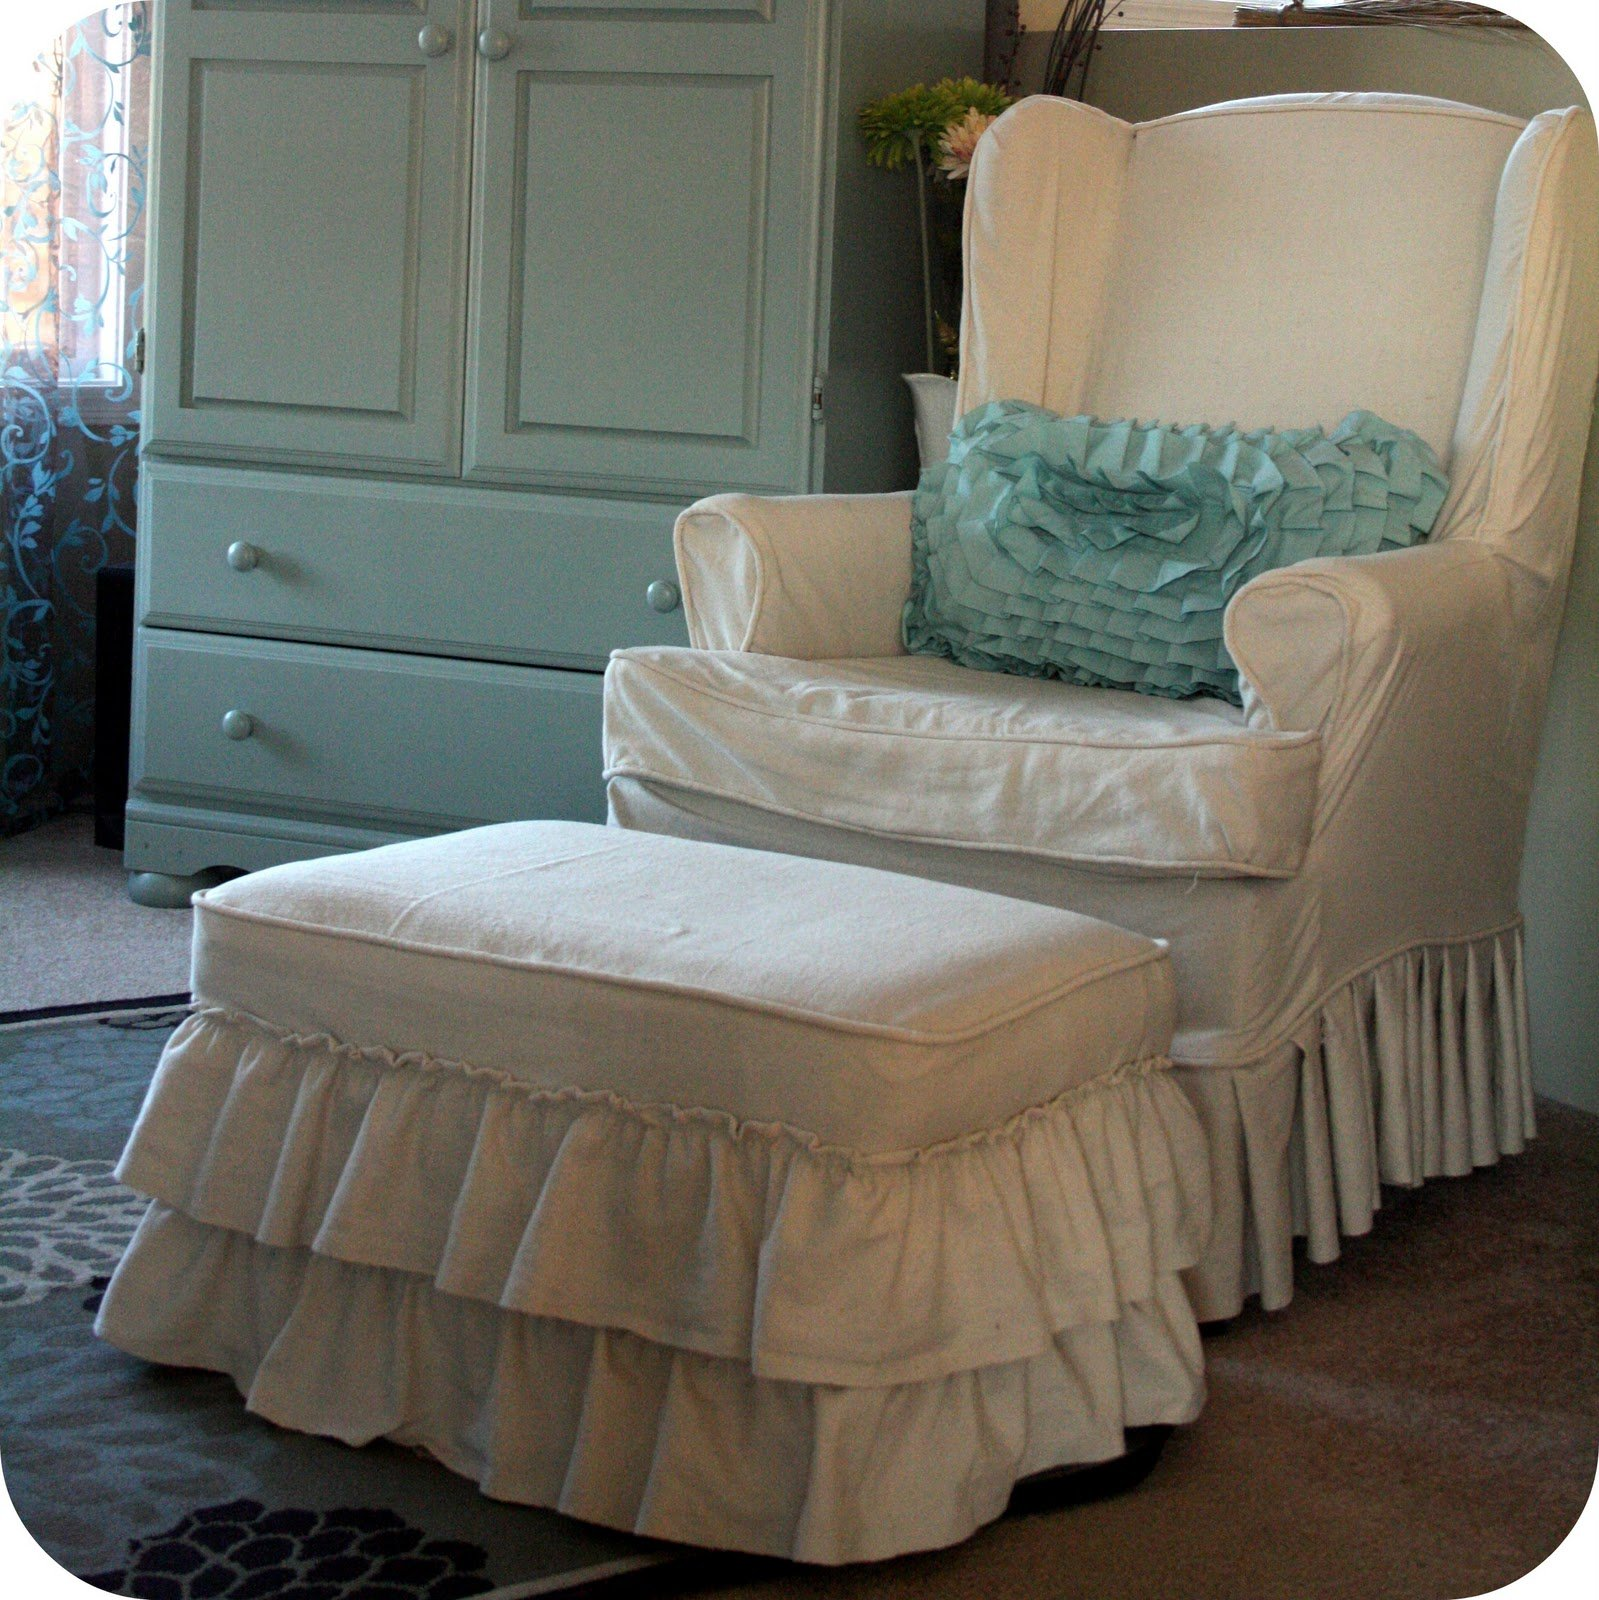 Slipcover For Oversized Chair And Ottoman Slipcovers For Chairs And Ottomans Home Furniture Design